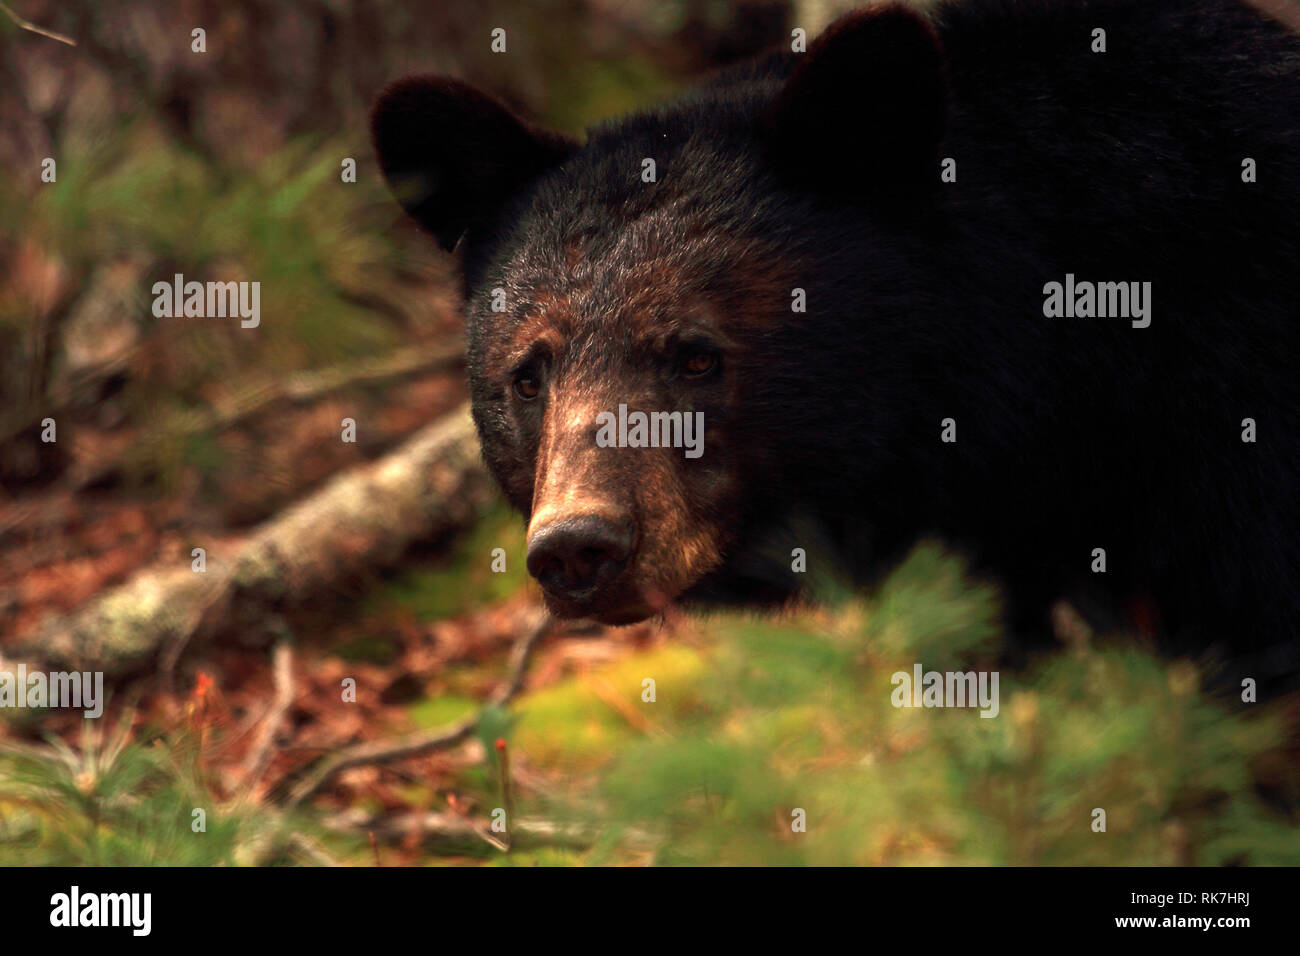 Black Bear in the Cades Cove section of Great Smokey Mountains National Park, Tennessee Stock Photo